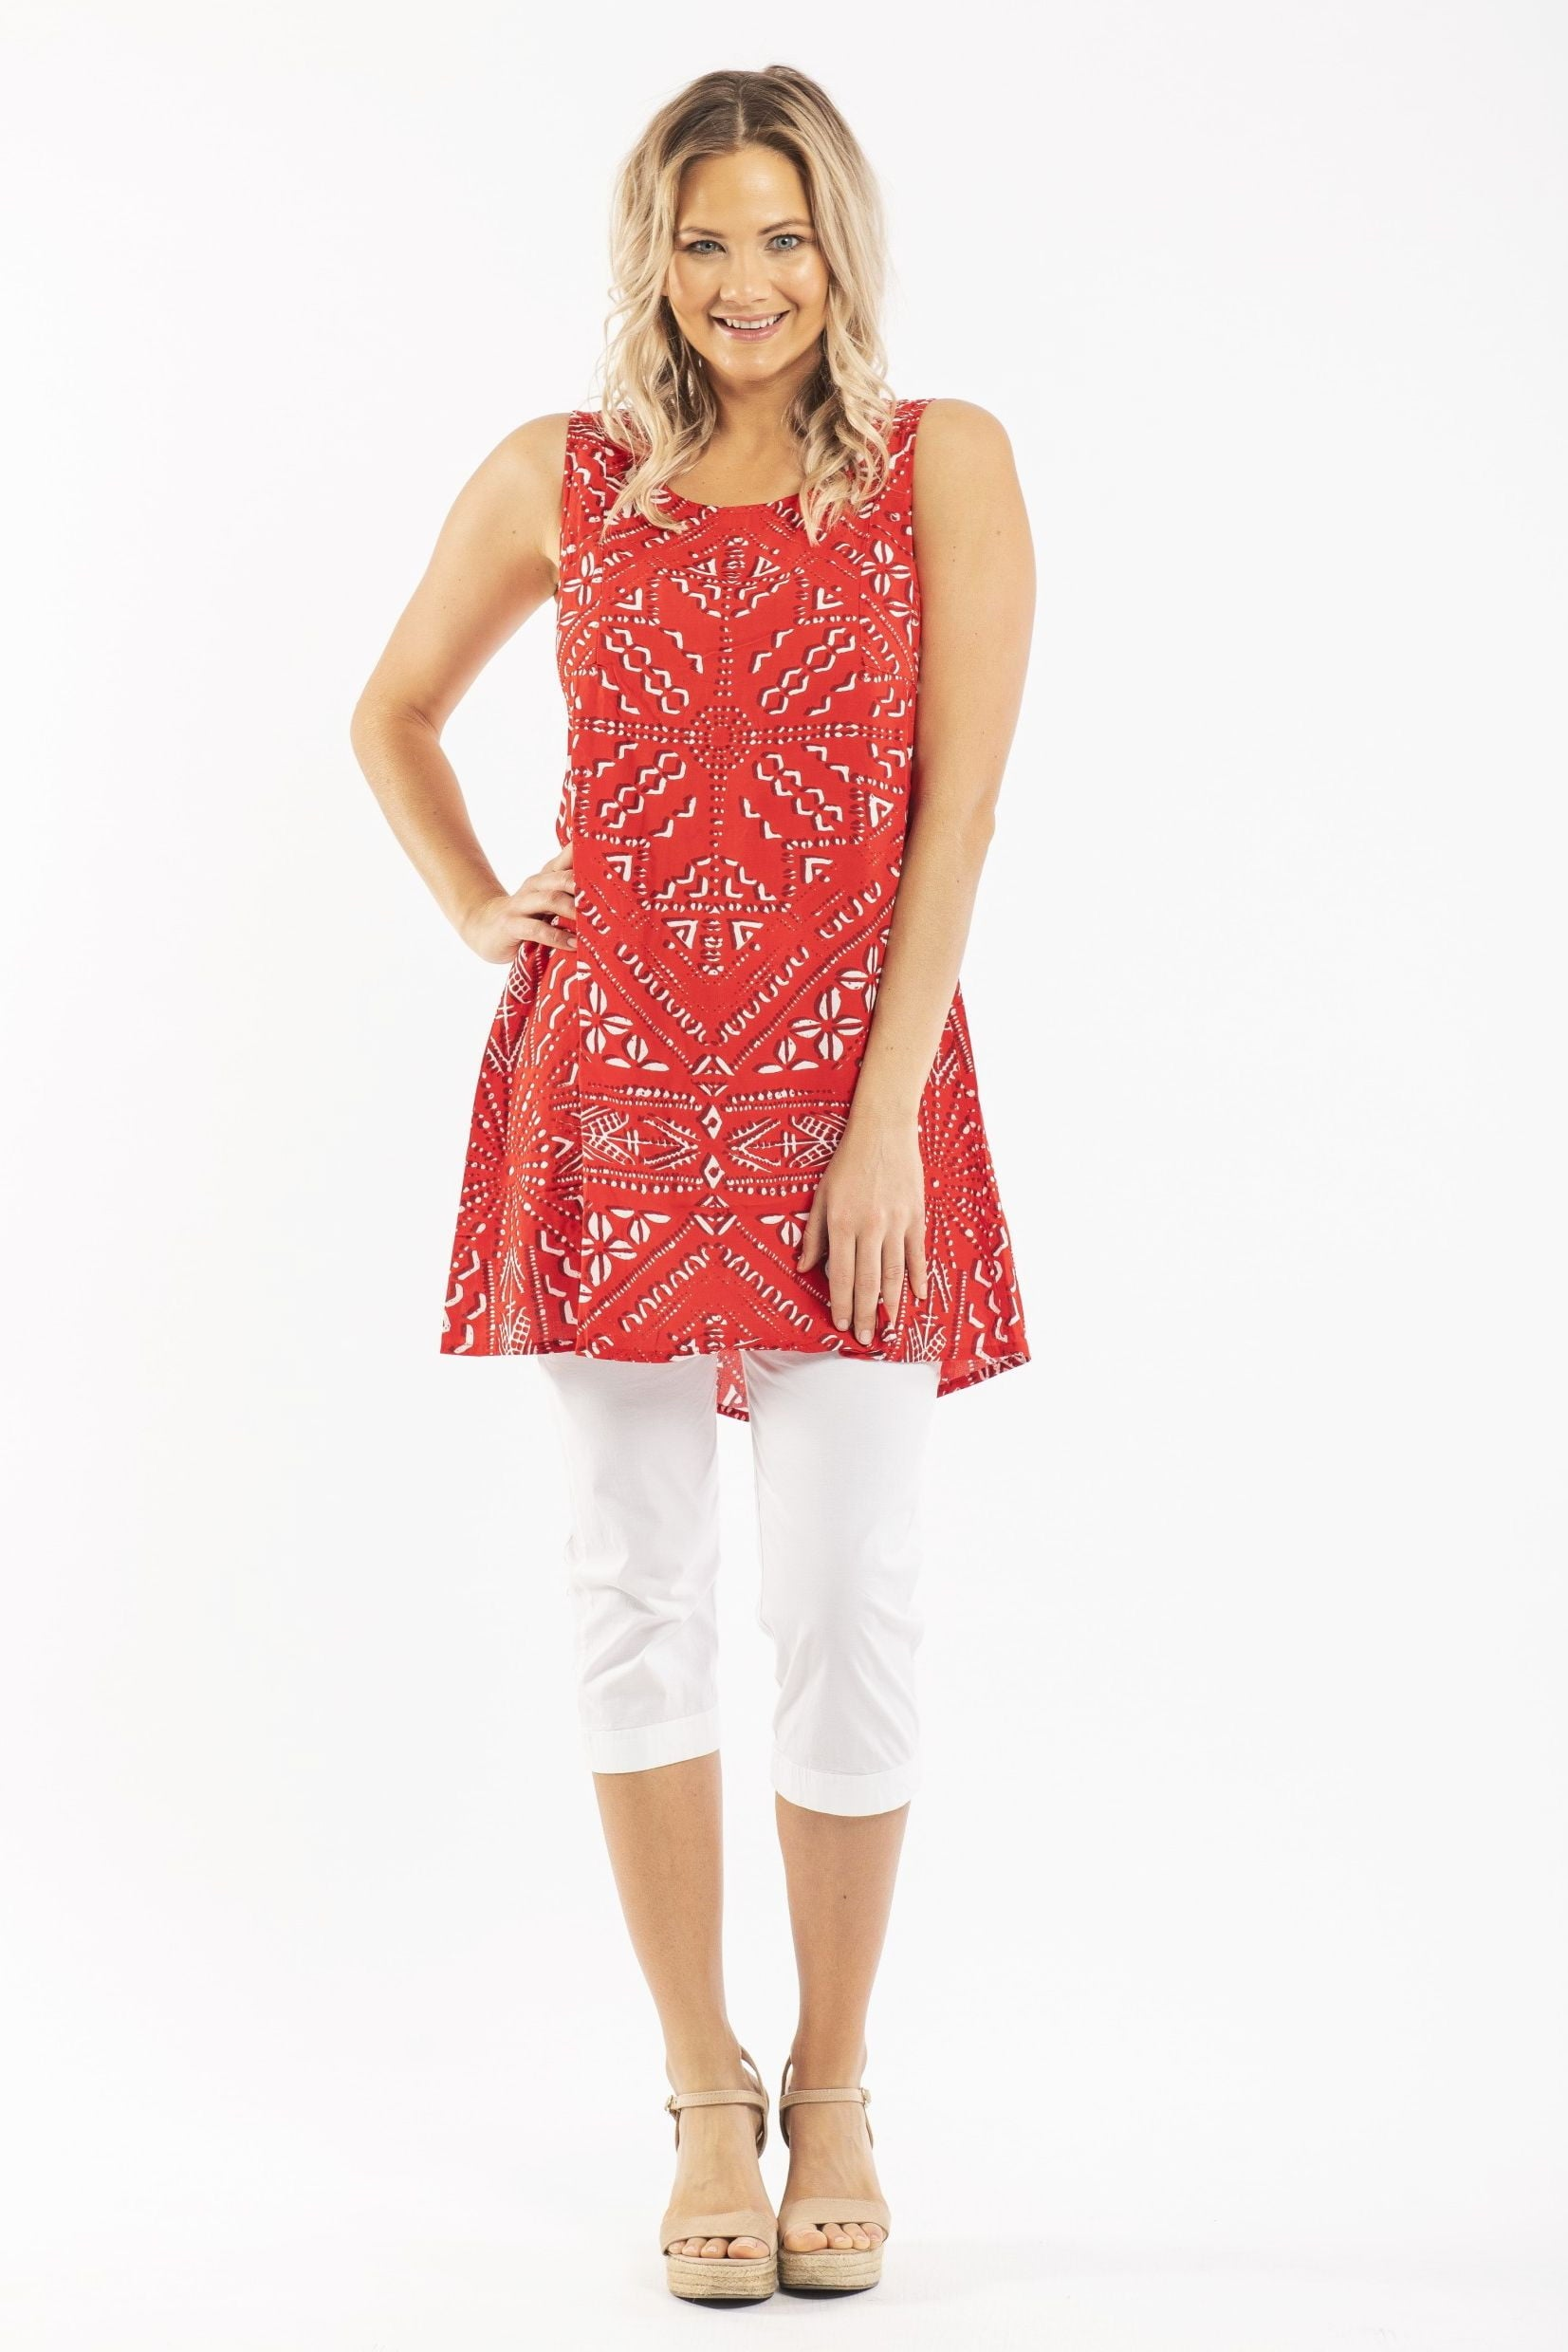 DW43 Peach Candy Red Tunic